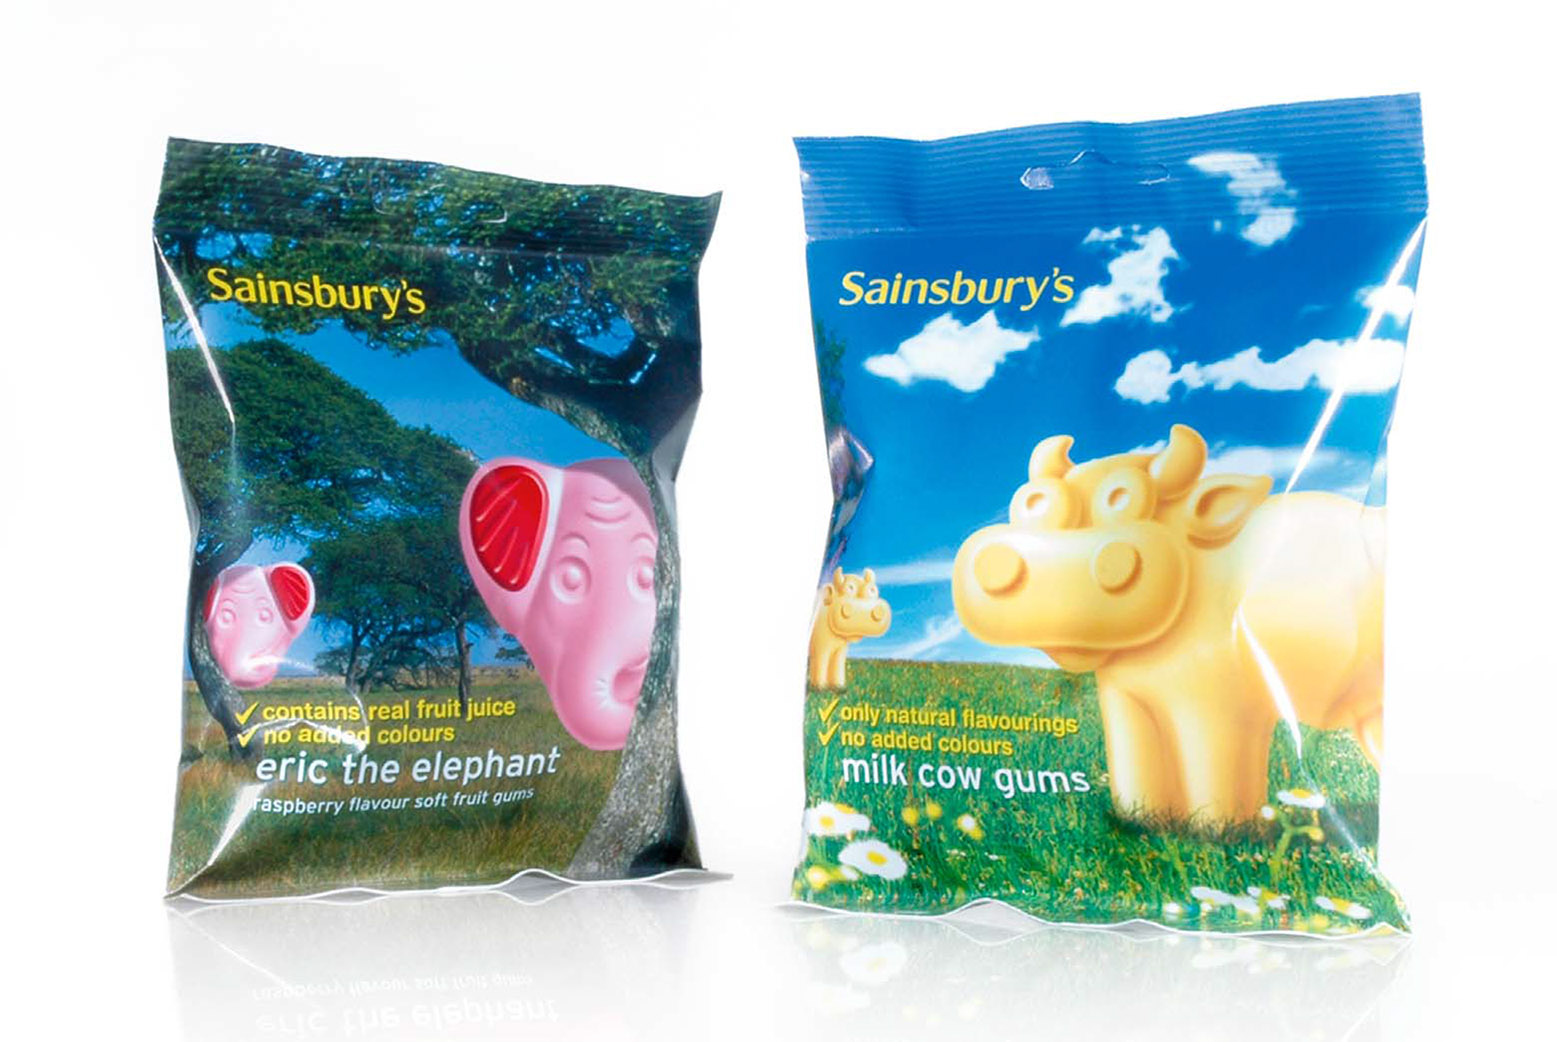 Sainsbury's 'Natural' Kids Sweets